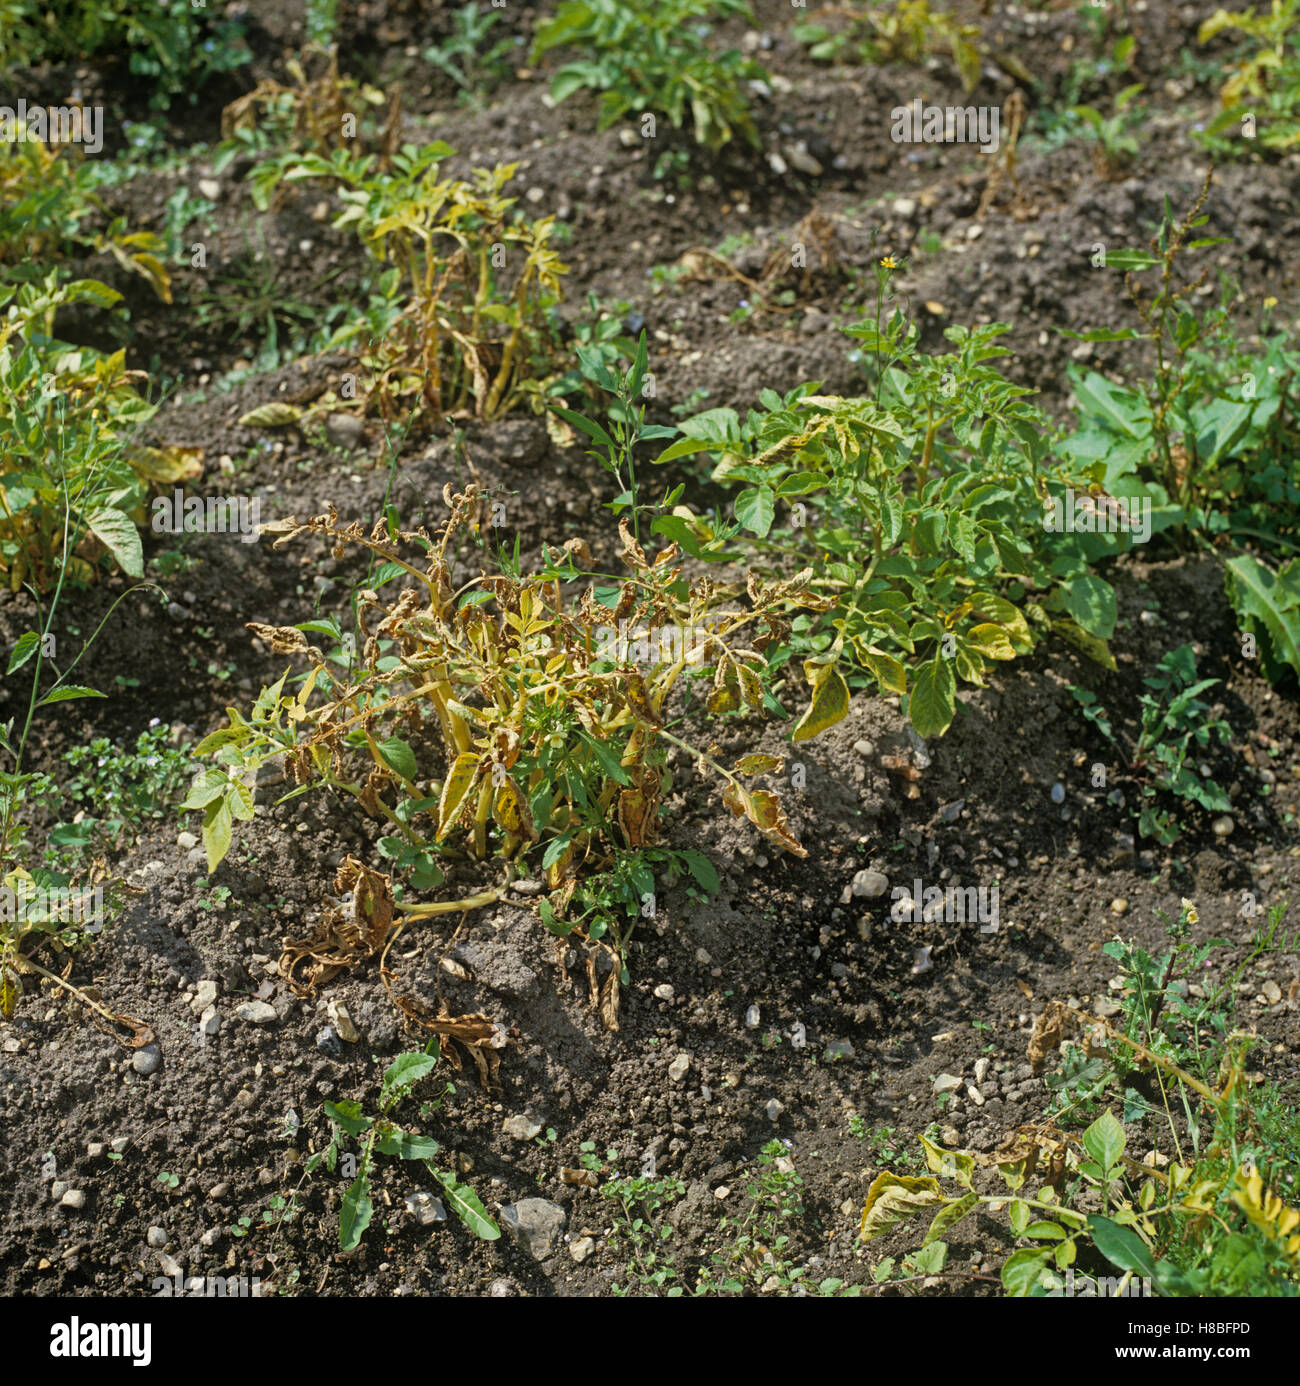 Severe late blight, Phytophthora infestans, damage to a potato crop - Stock Image